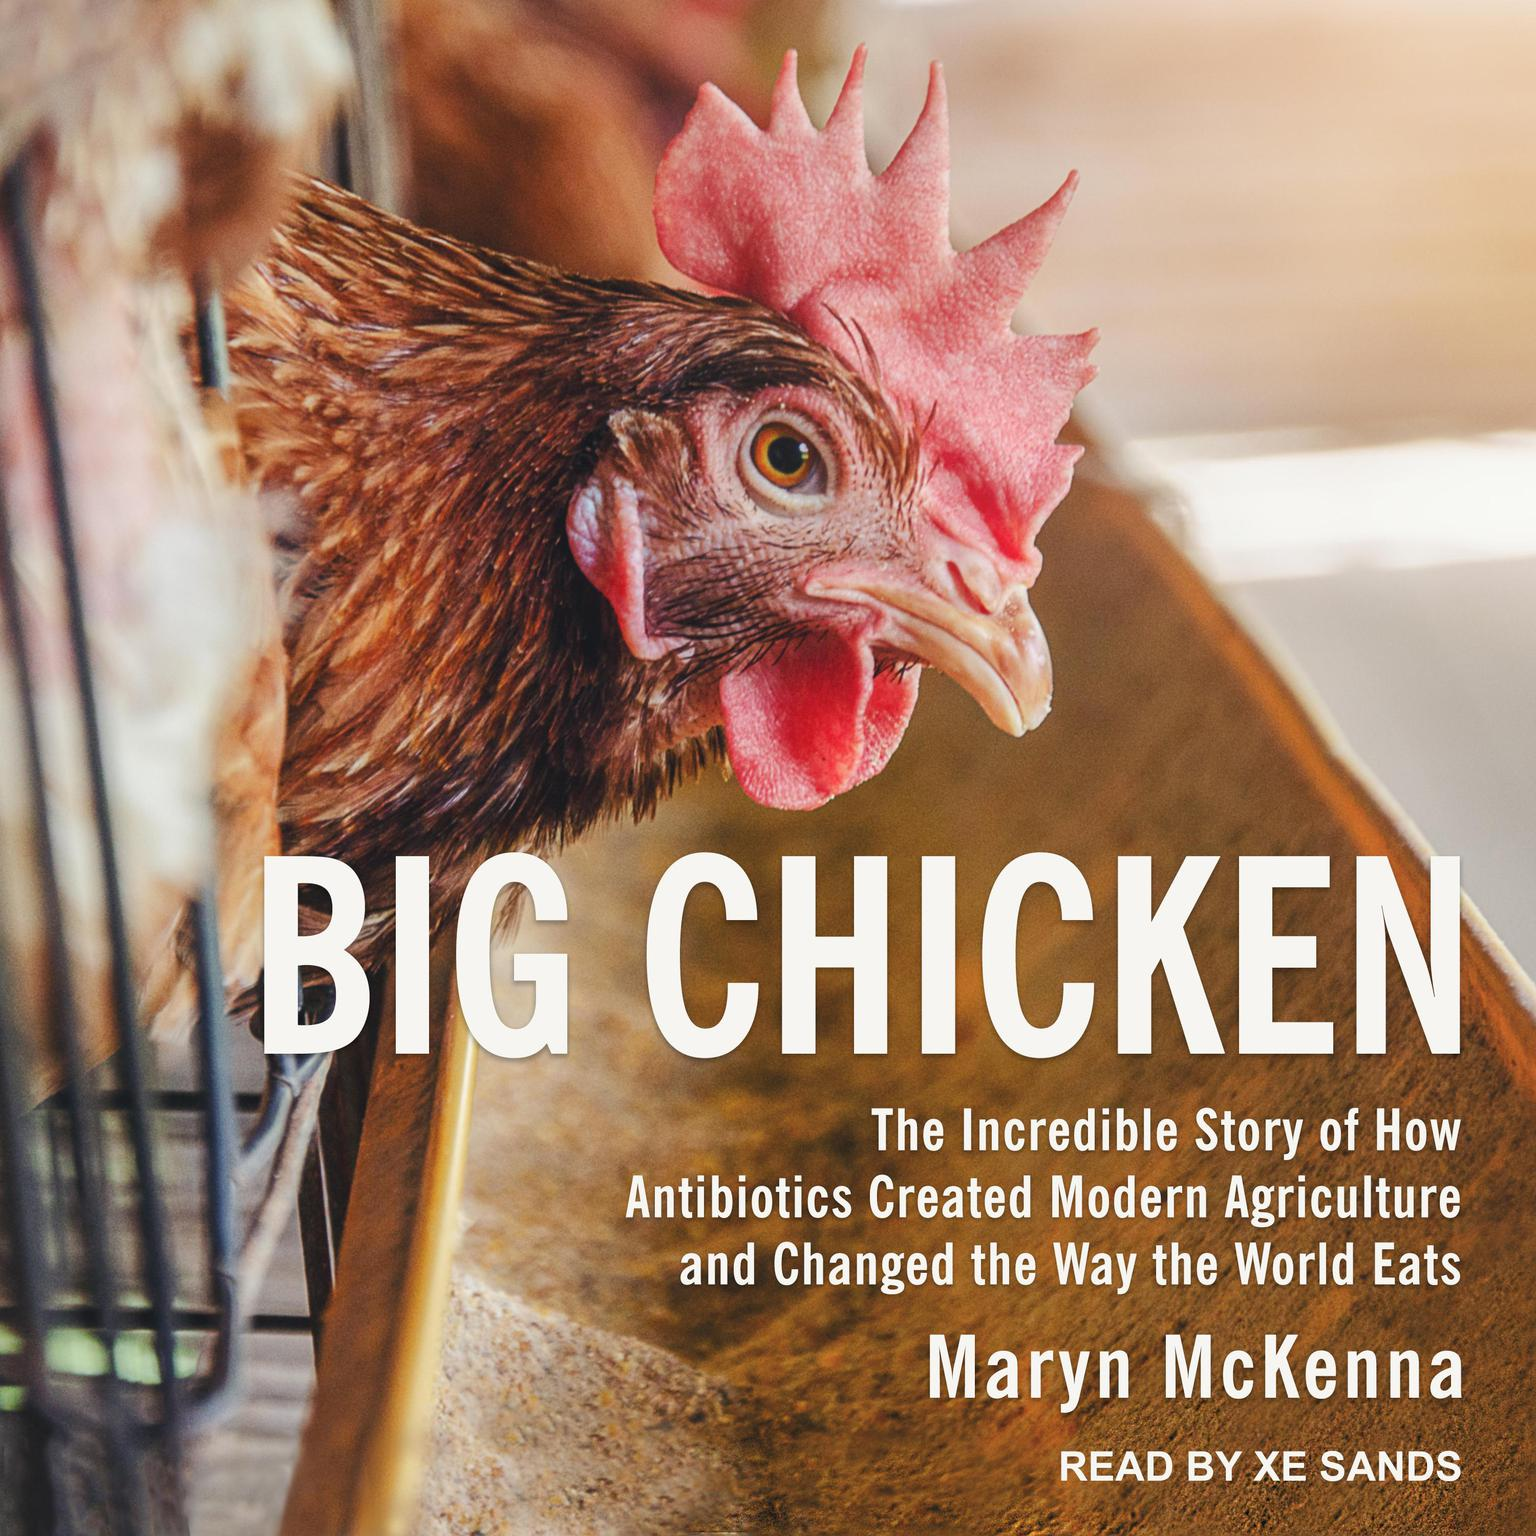 Printable Big Chicken: The Incredible Story of How Antibiotics Created Modern Agriculture and Changed the Way the World Eats Audiobook Cover Art